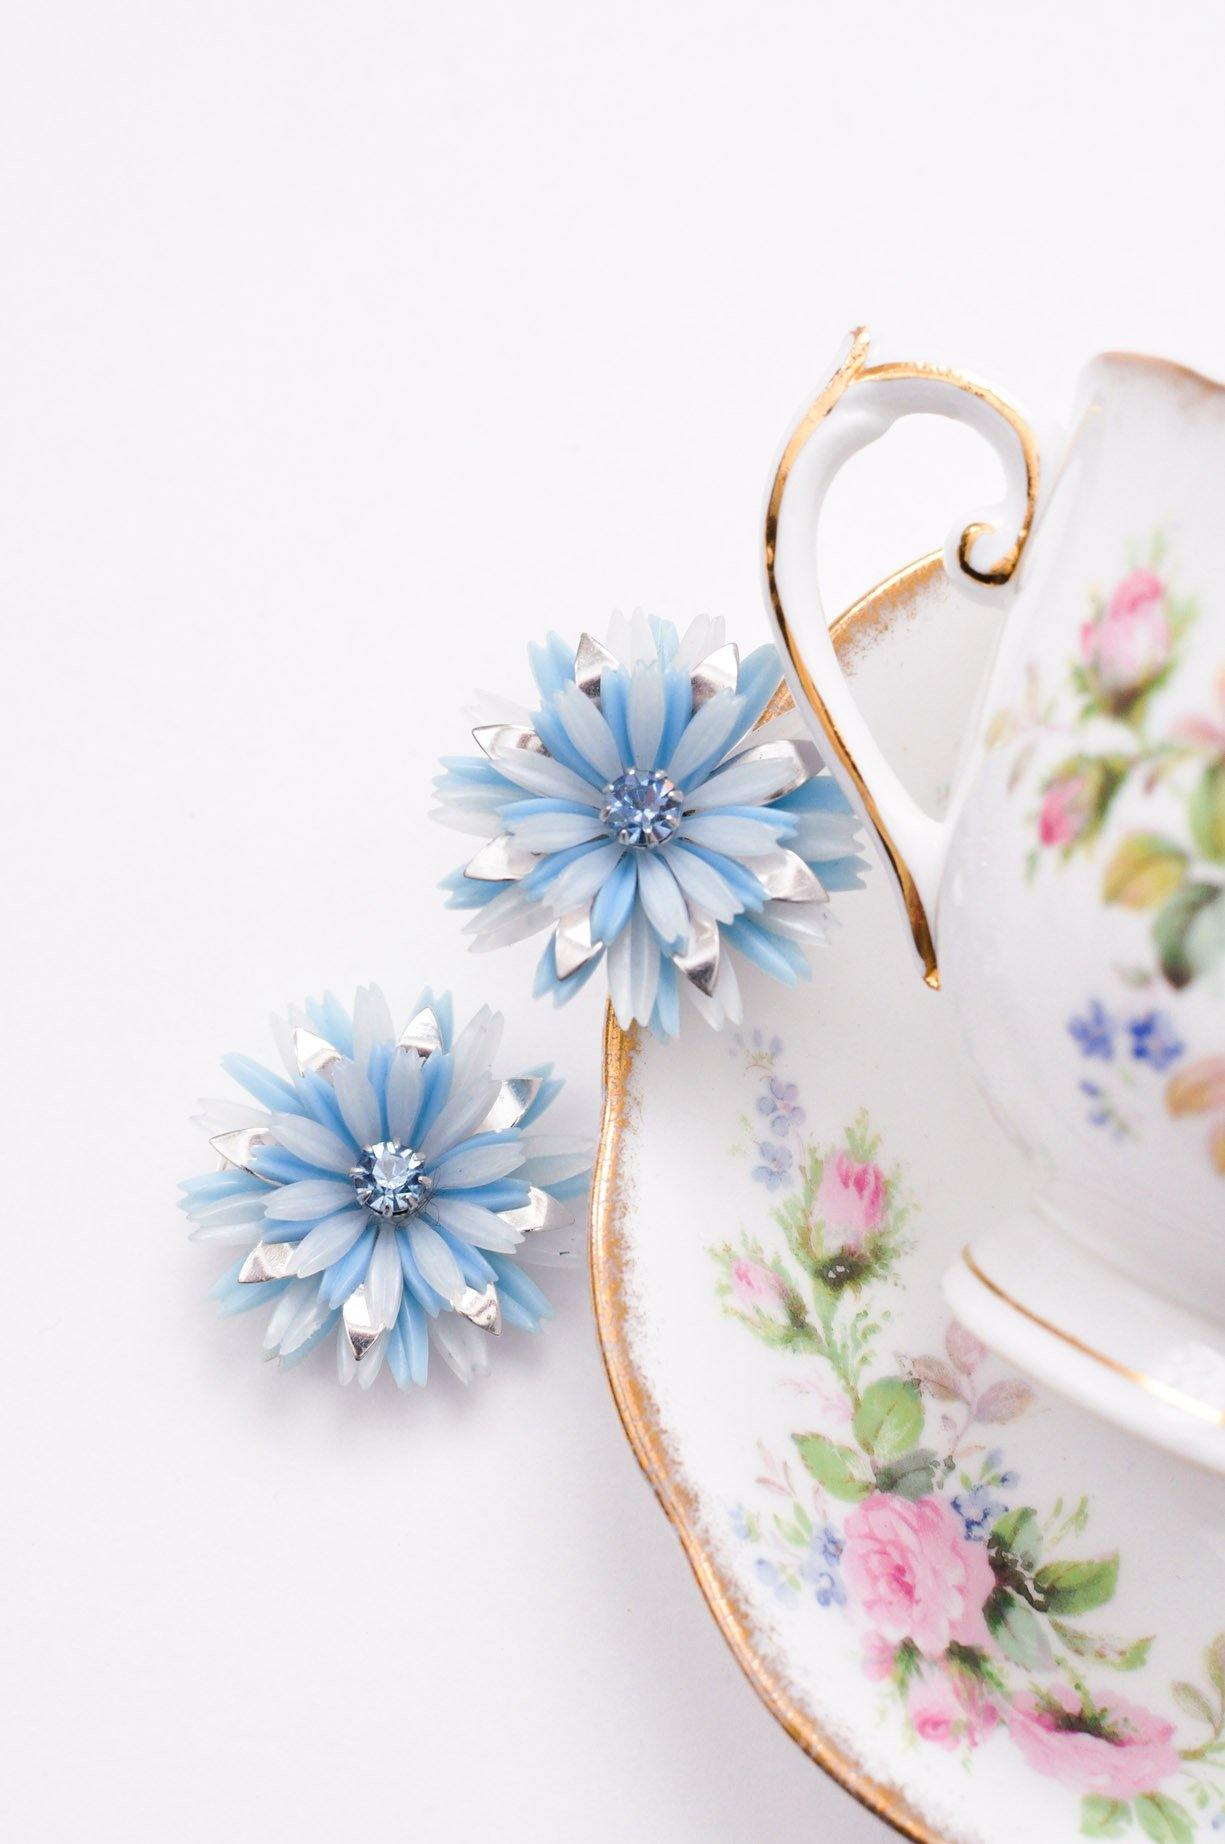 Blue Rhinestone Flower Clip-On Earrings - Sweet & Spark